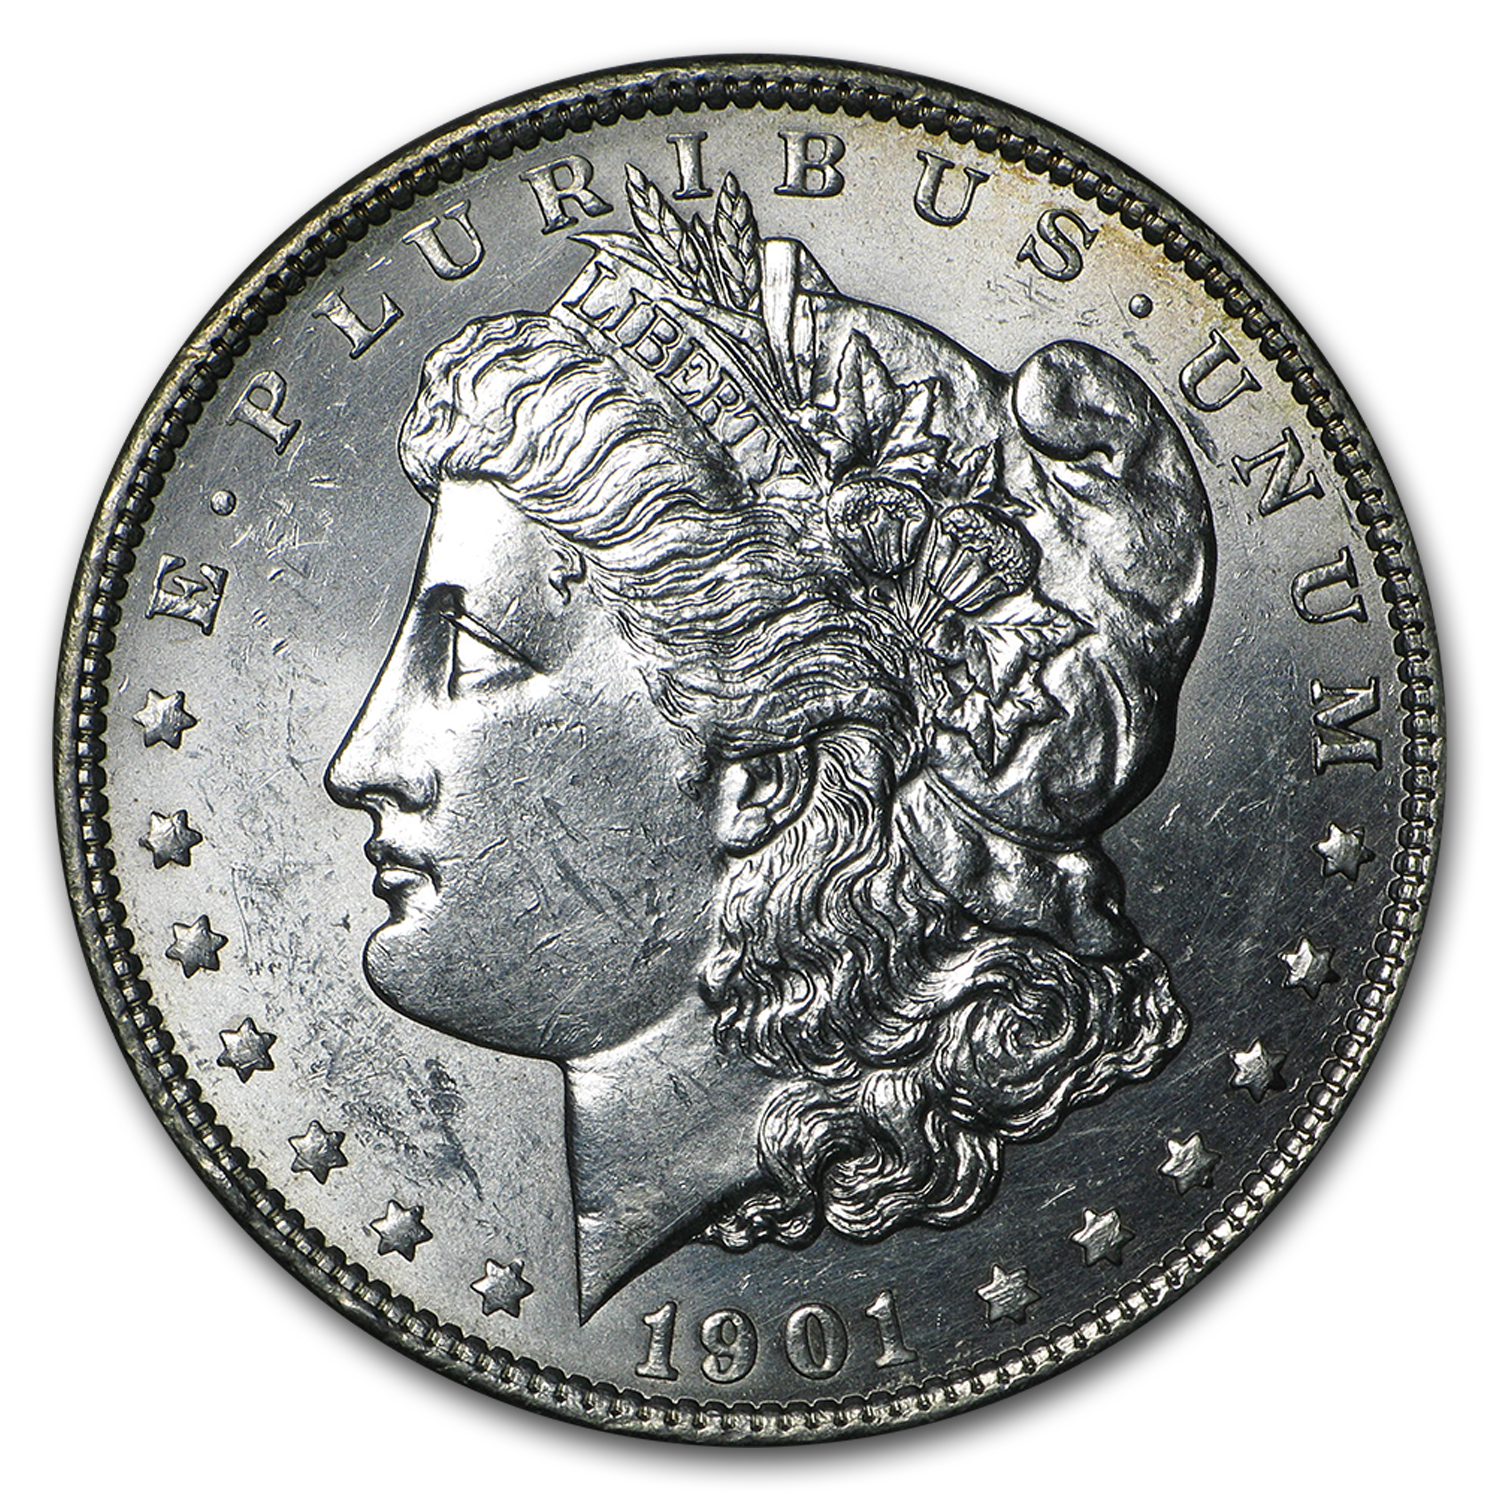 1901 Morgan Dollar - Brilliant Uncirculated